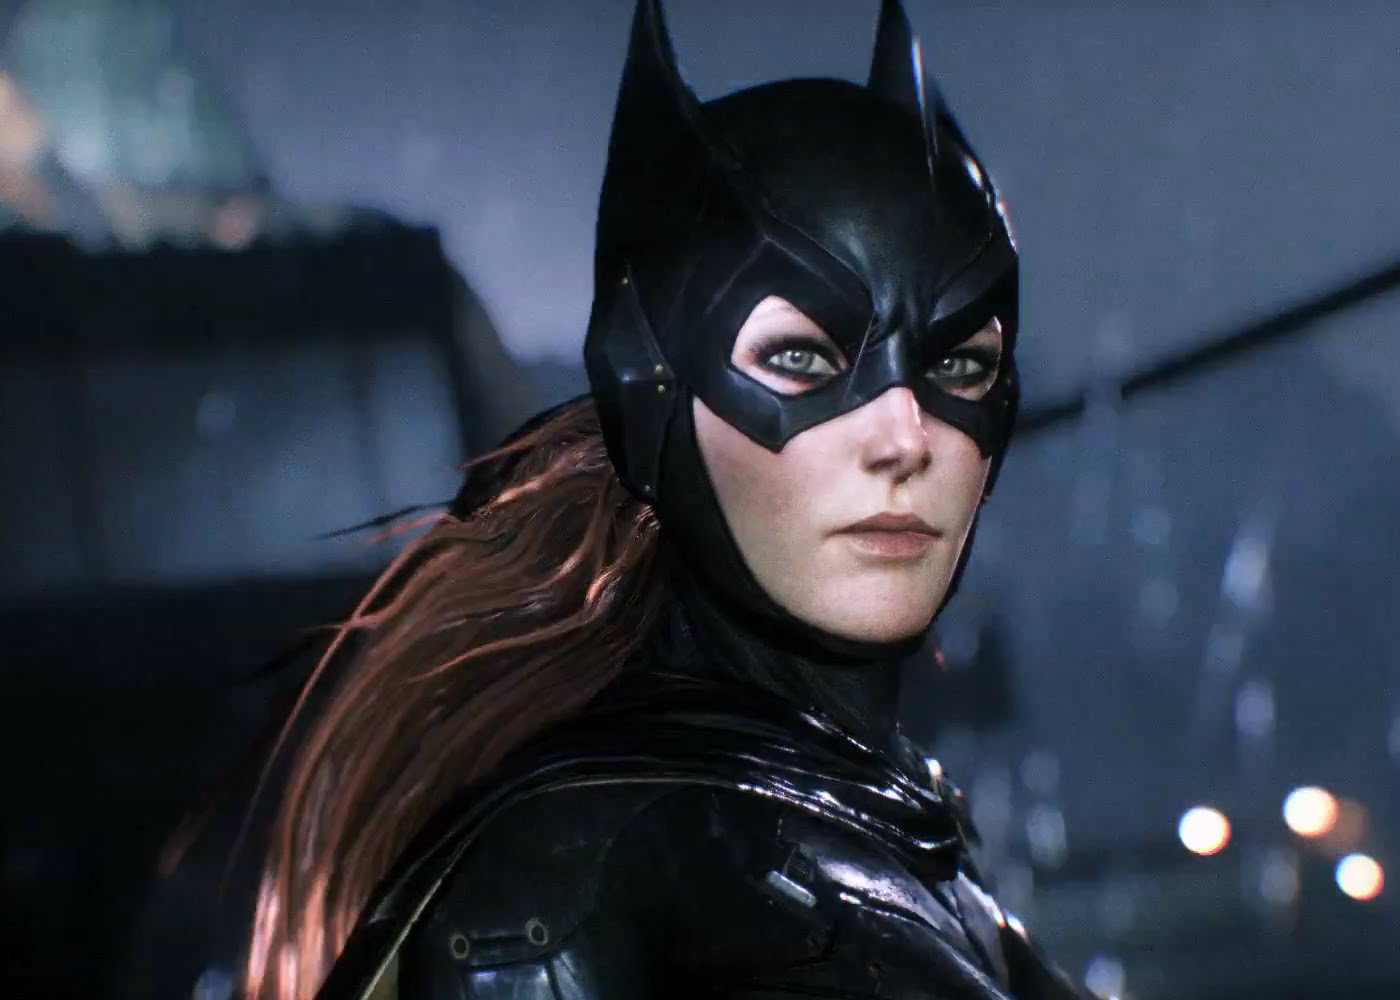 Batgirl: Whedon May Be Looking to Cast an Unknown